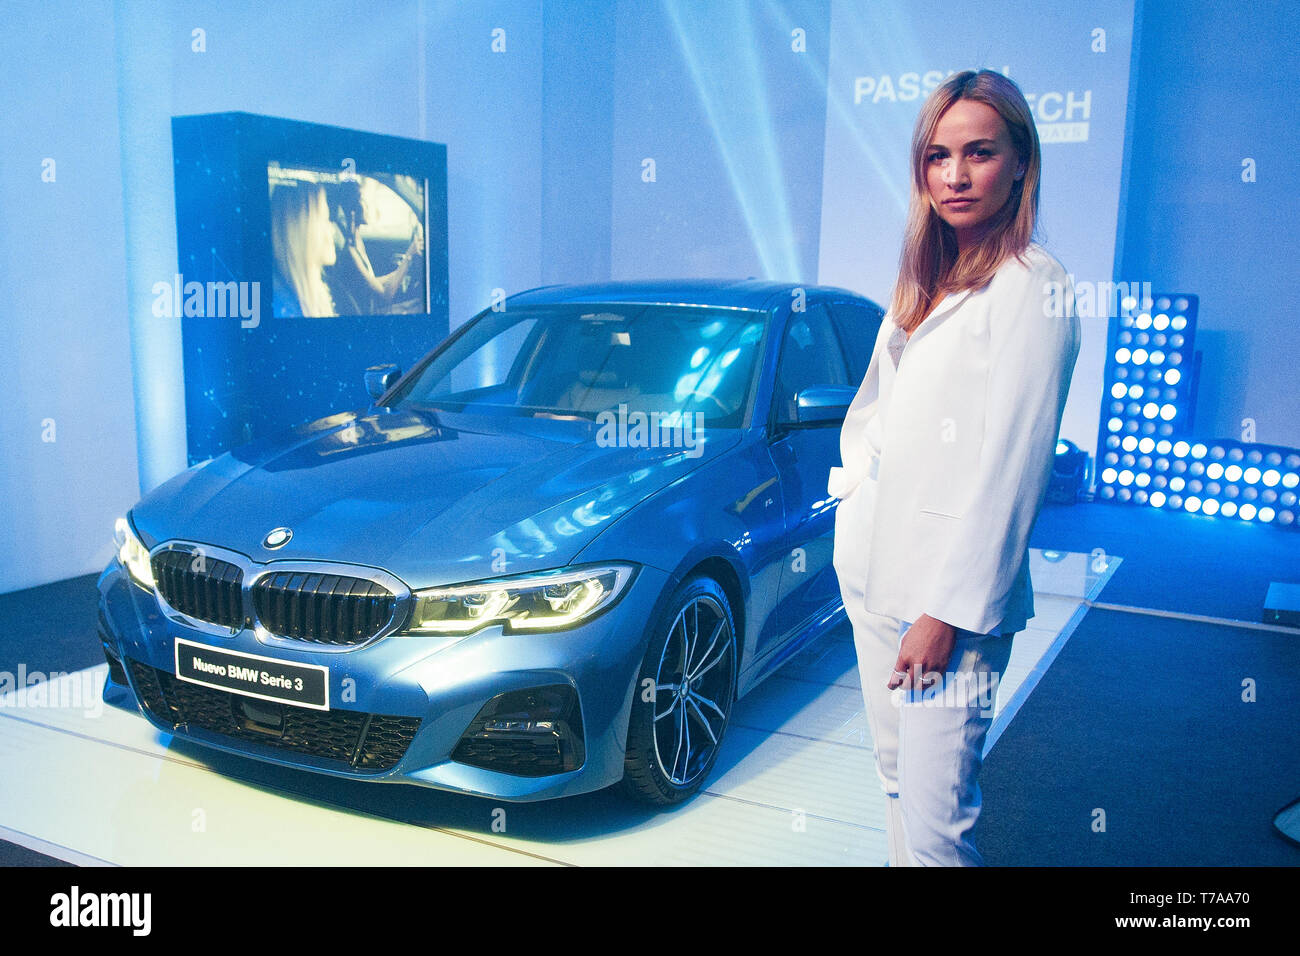 Spanish Racecar Driver Carmen Jorda Attends Passion Tech Bmw Days